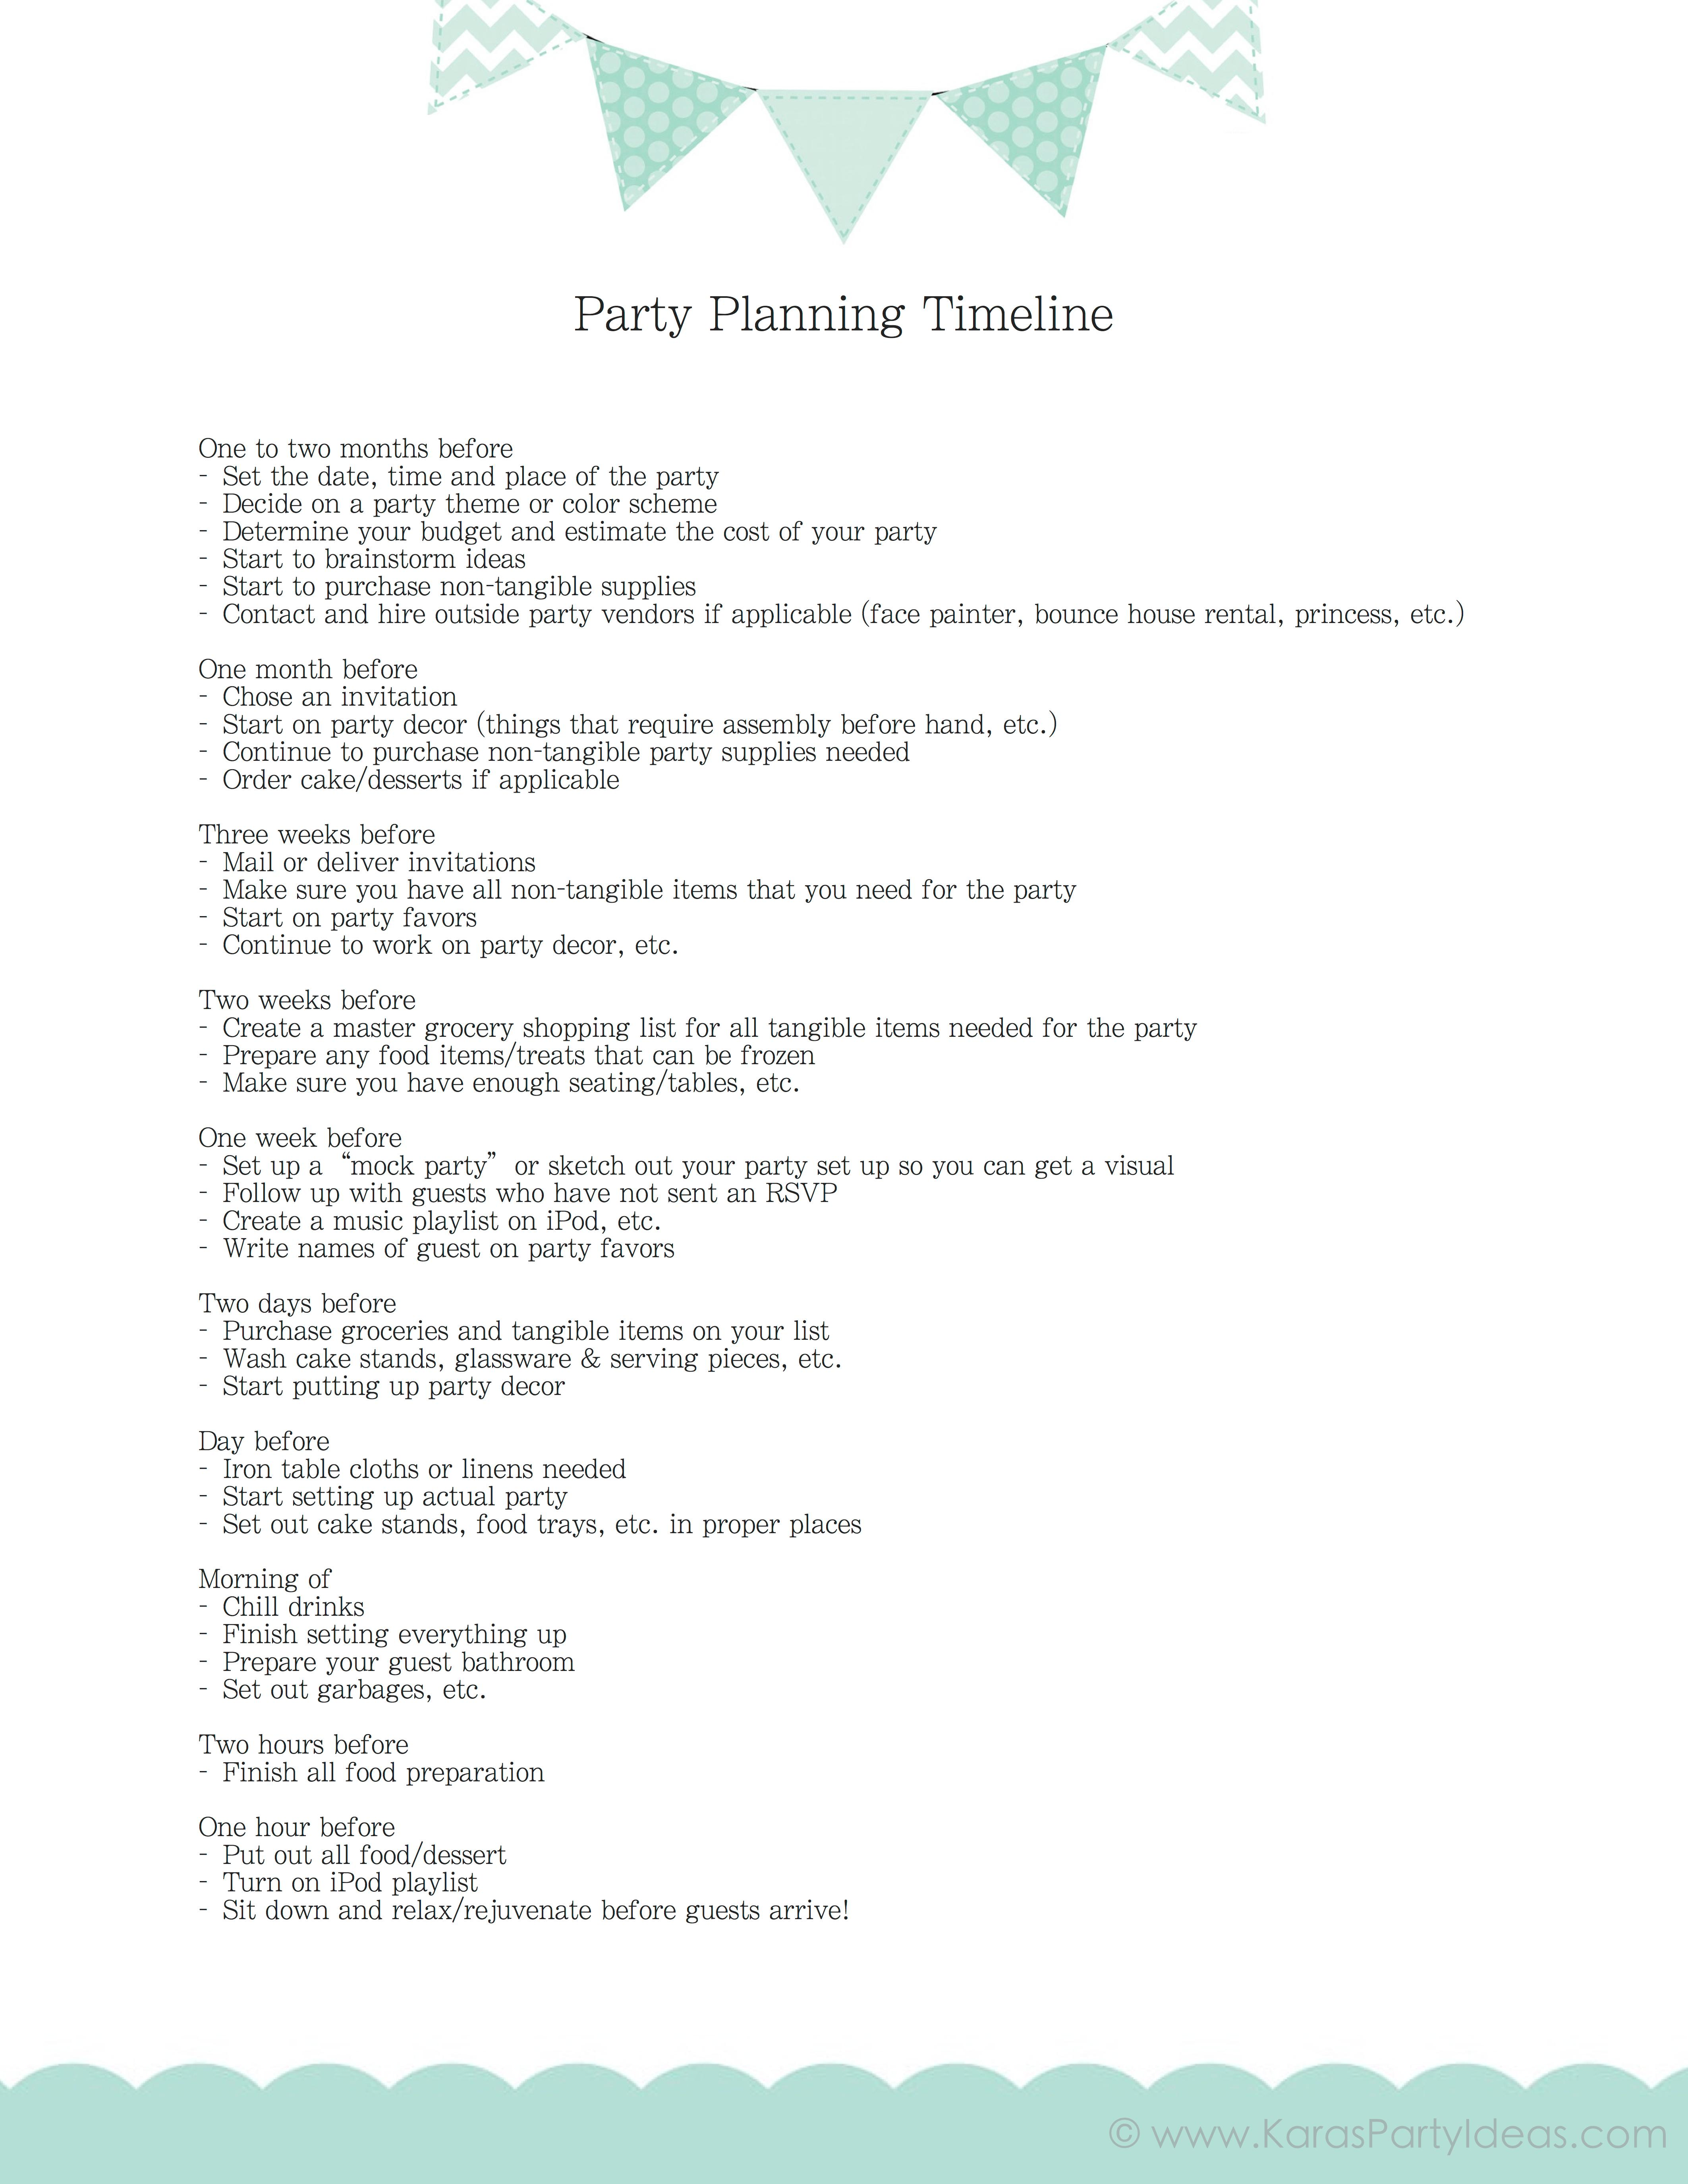 kara s party ideas free download party planning timeline mini